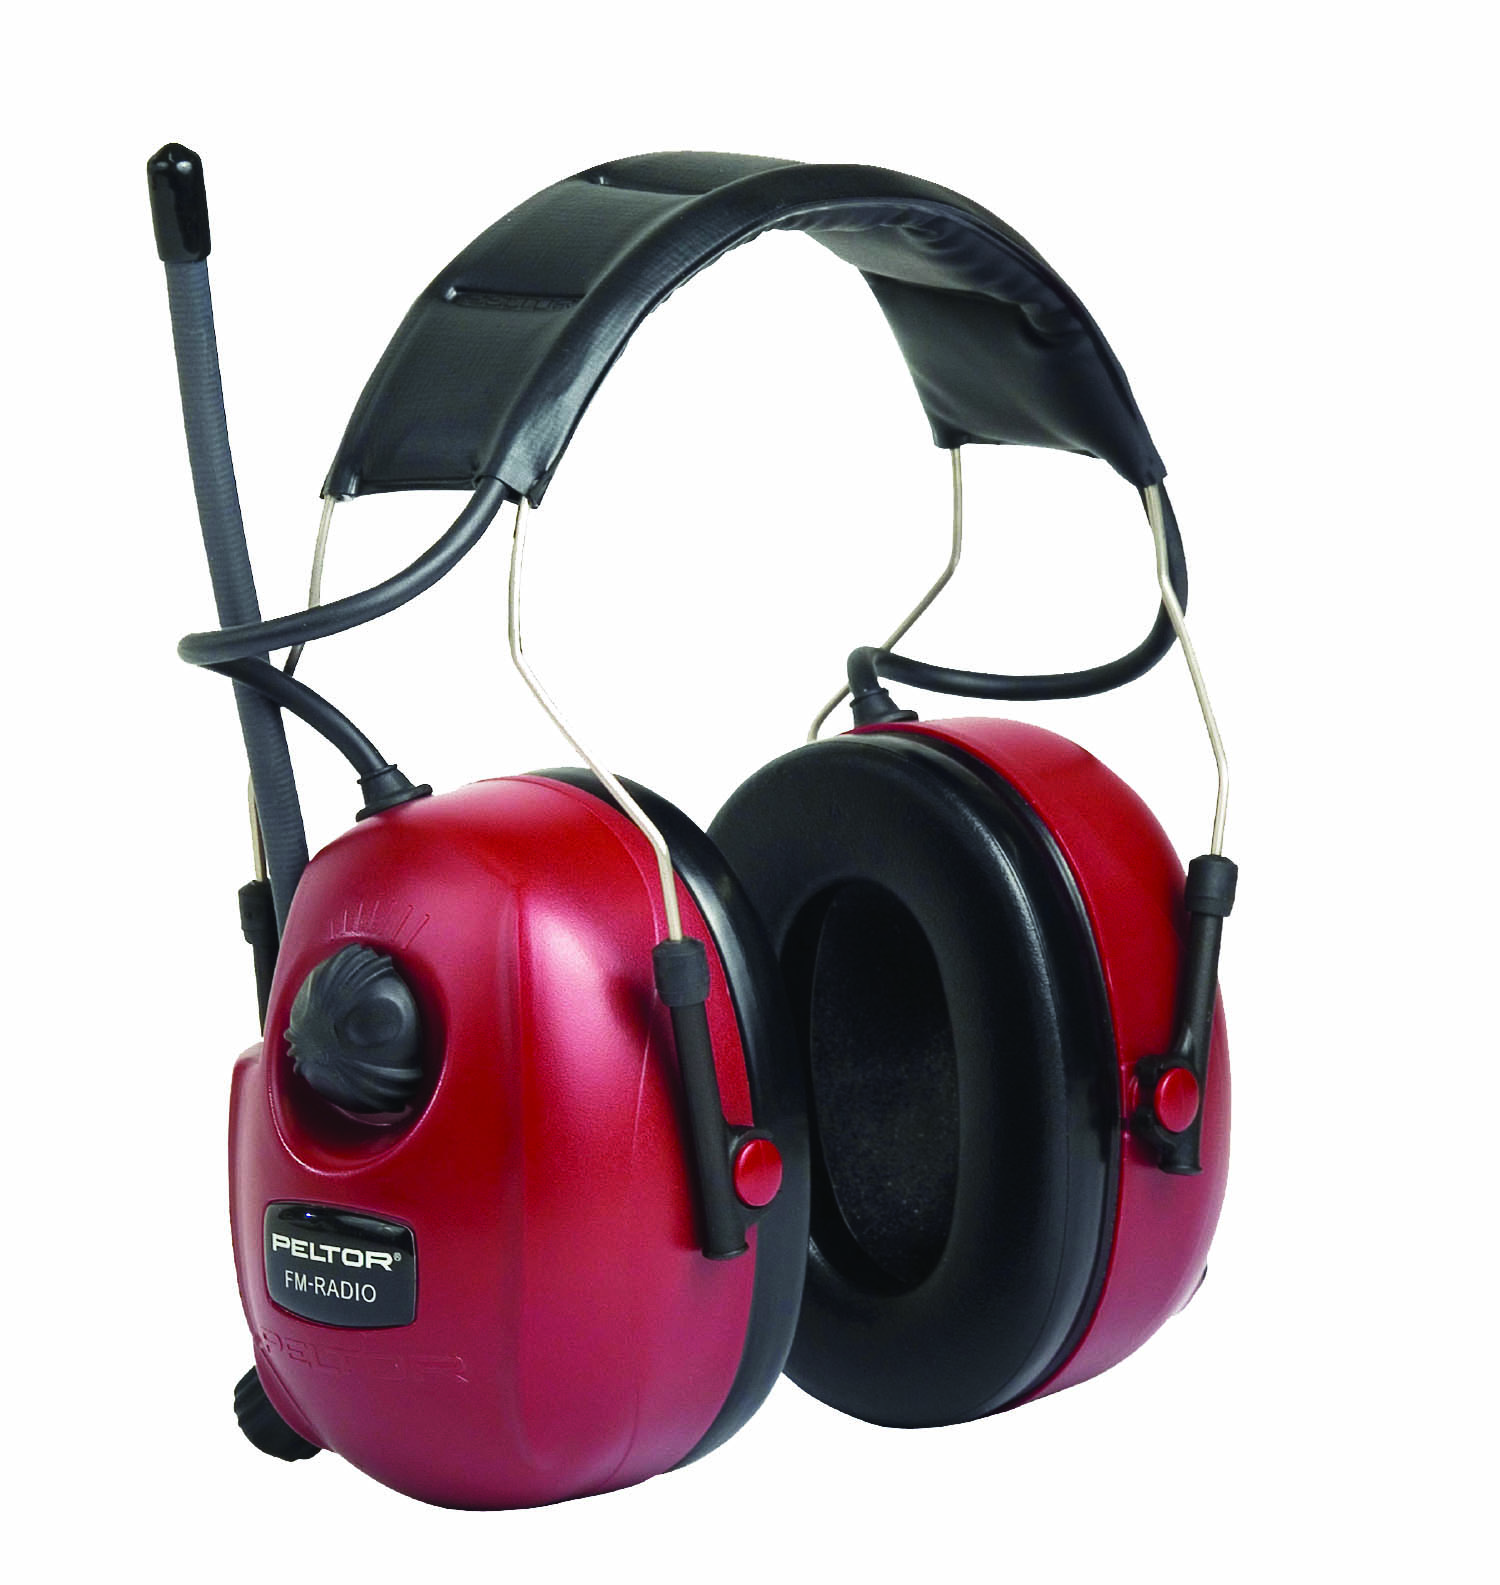 Illustration du produit : Casque-radio anti-bruit Peltor